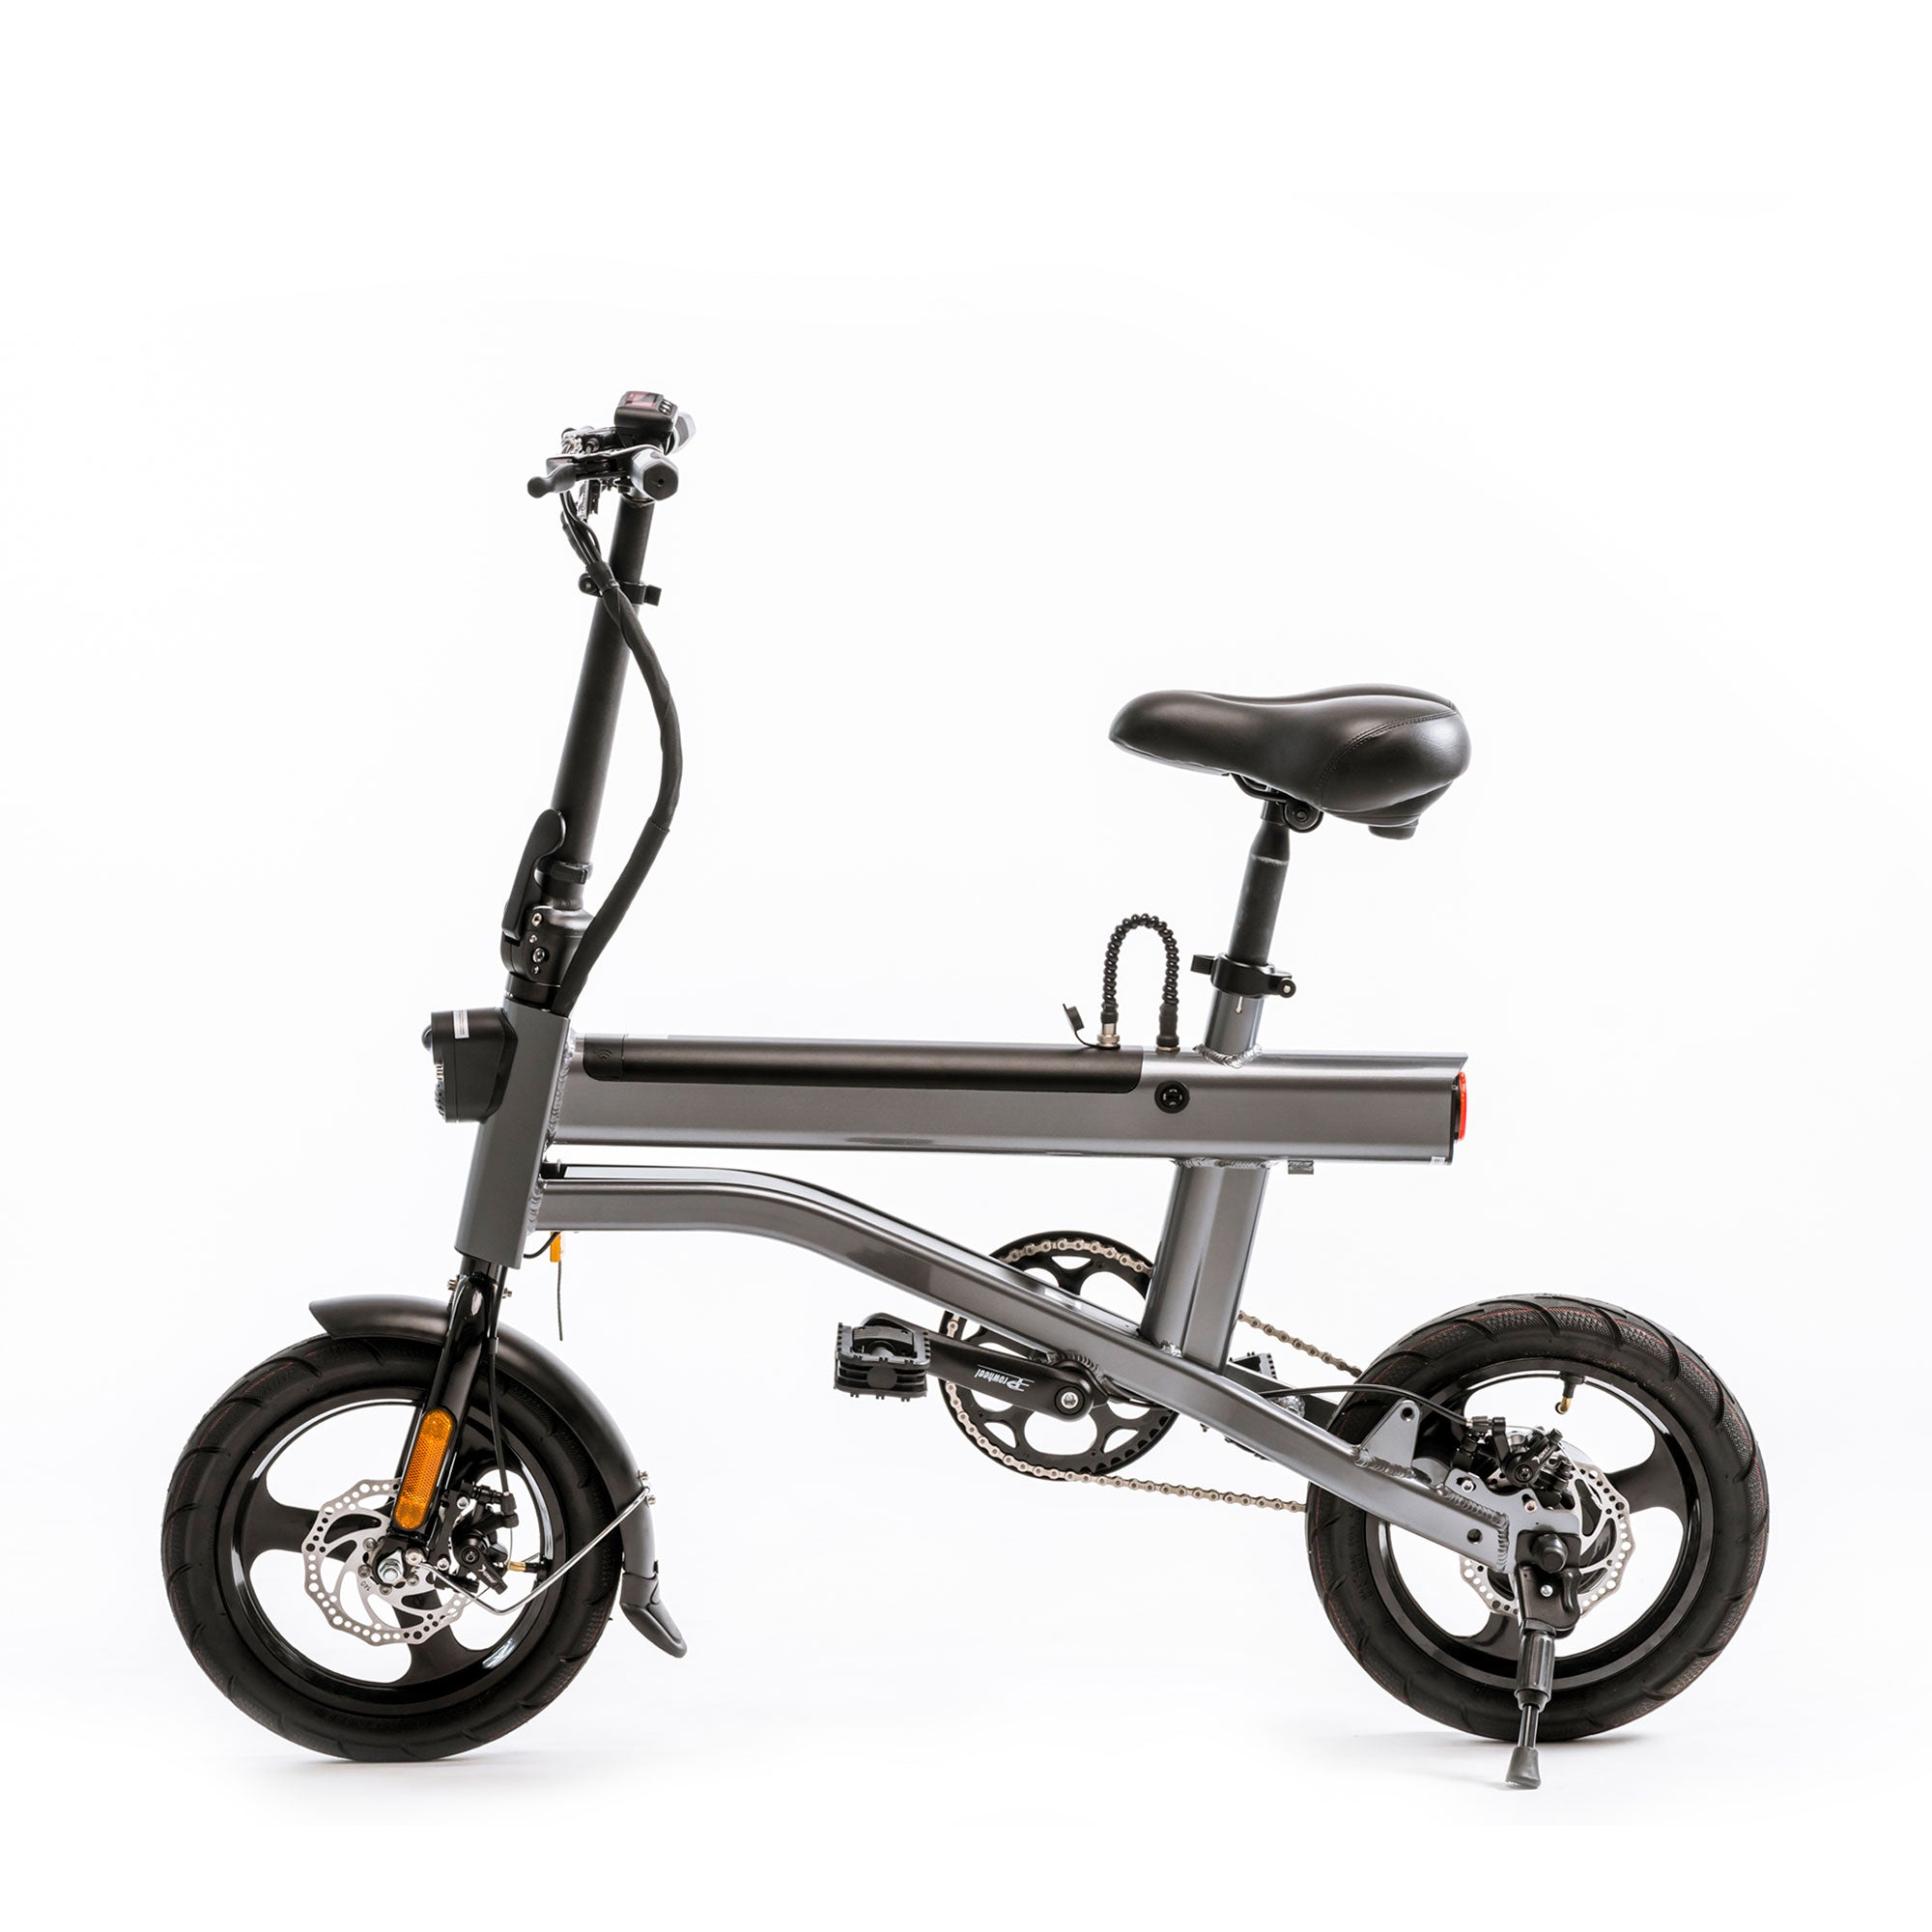 JIMOVE LC Ebike - JI-MOVE | PAB | Electronic Bicycle Singapore